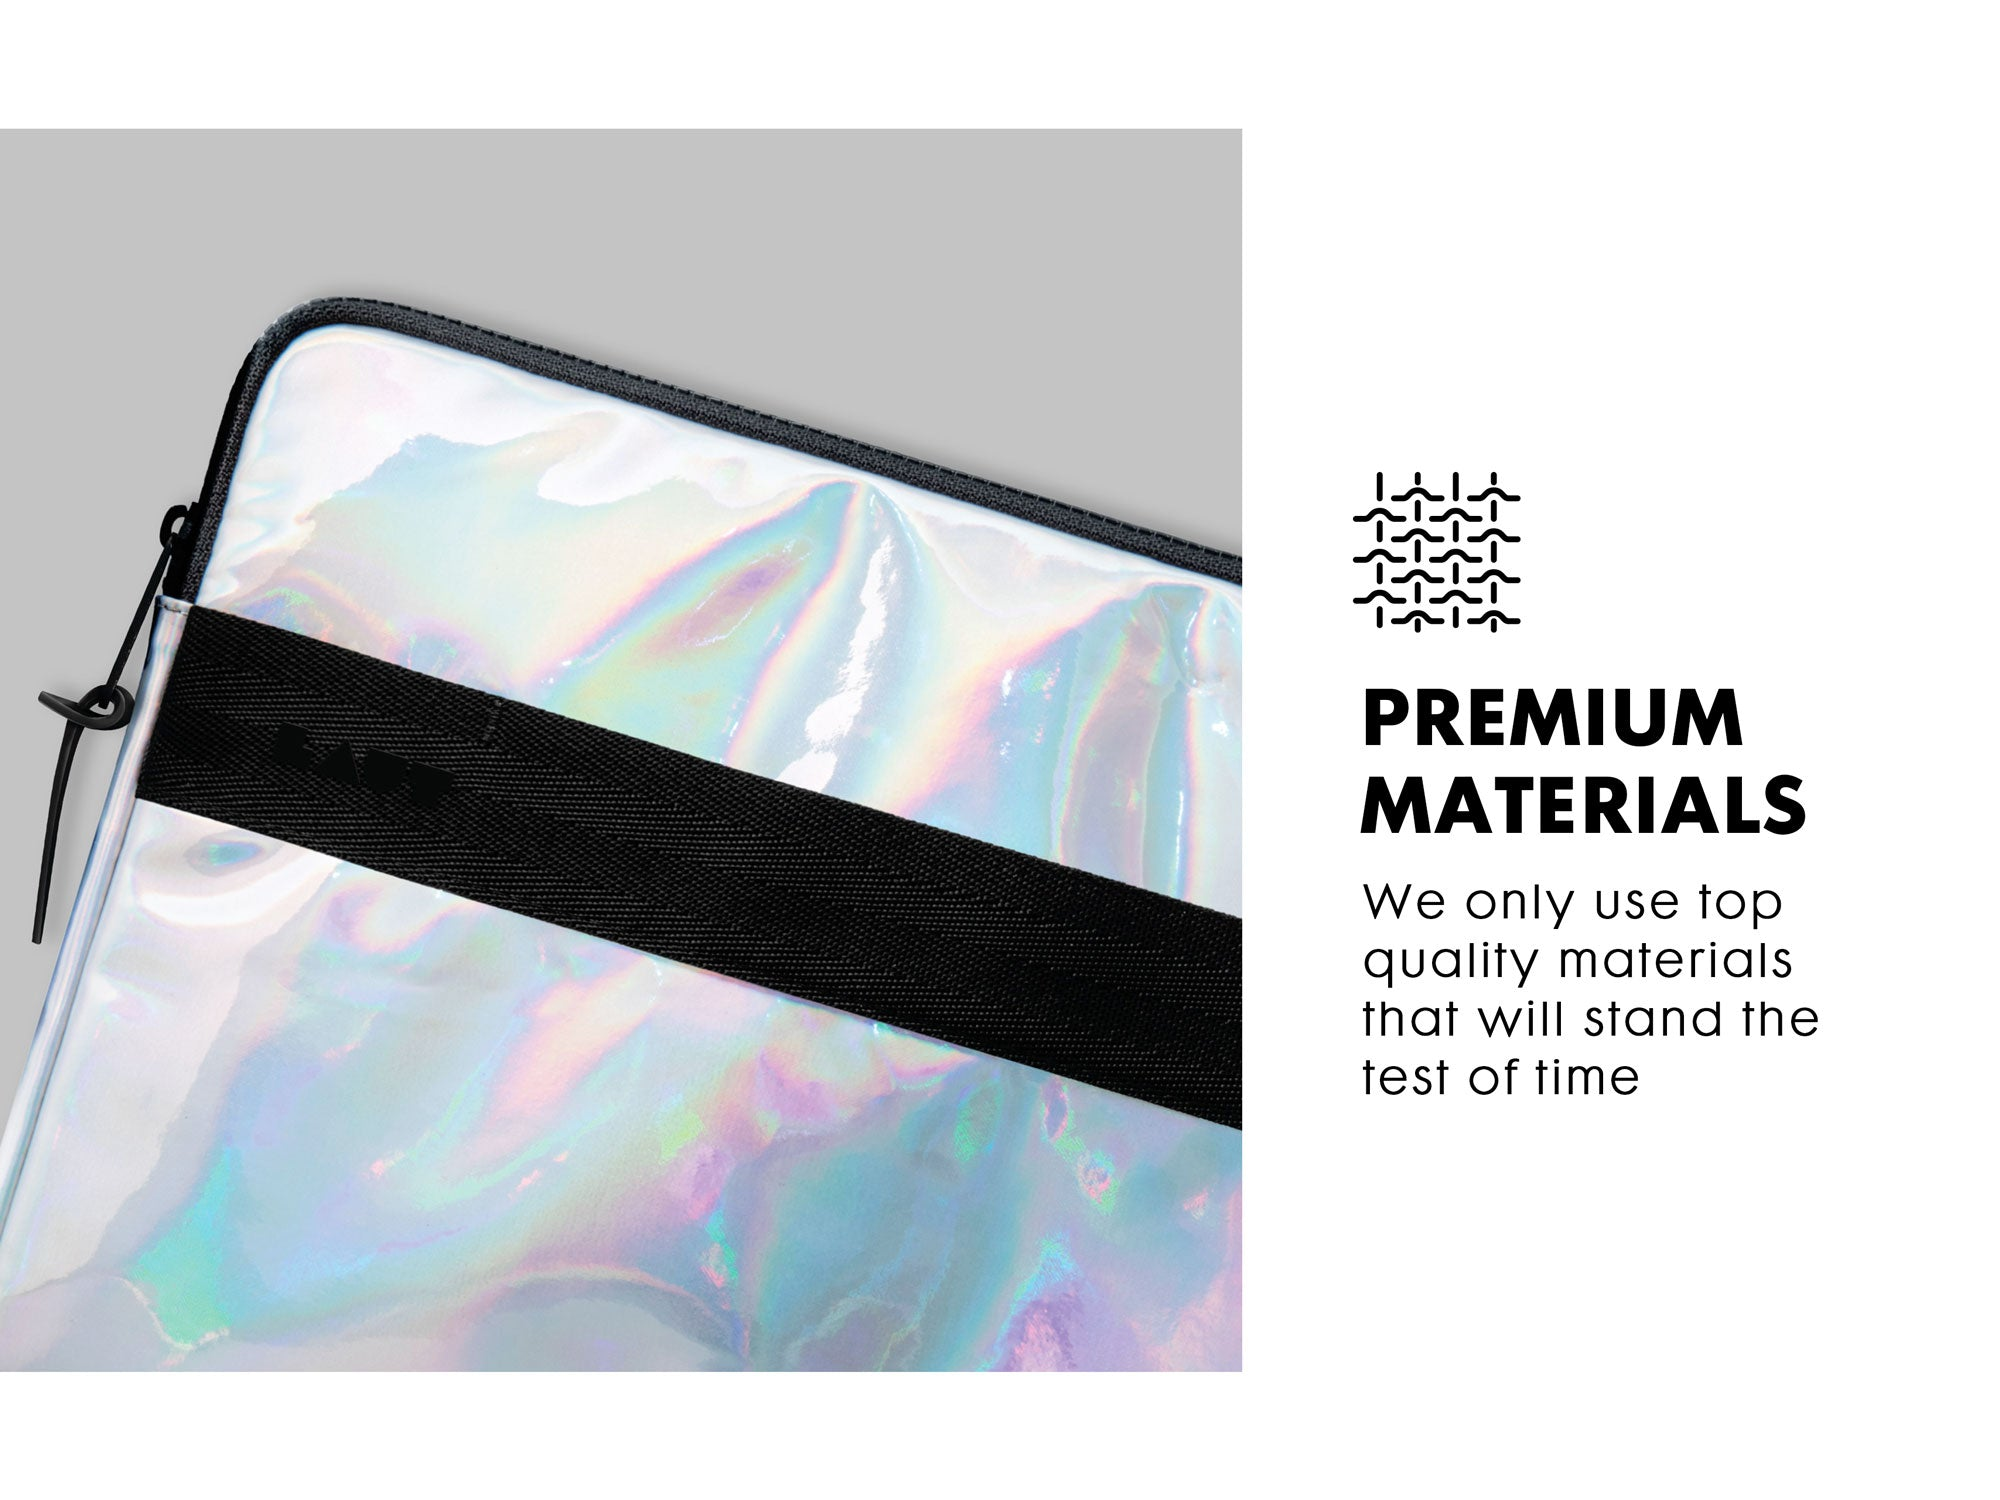 LAUT HOLOGRAPHIC Protective Sleeve for Macbook 13-inch